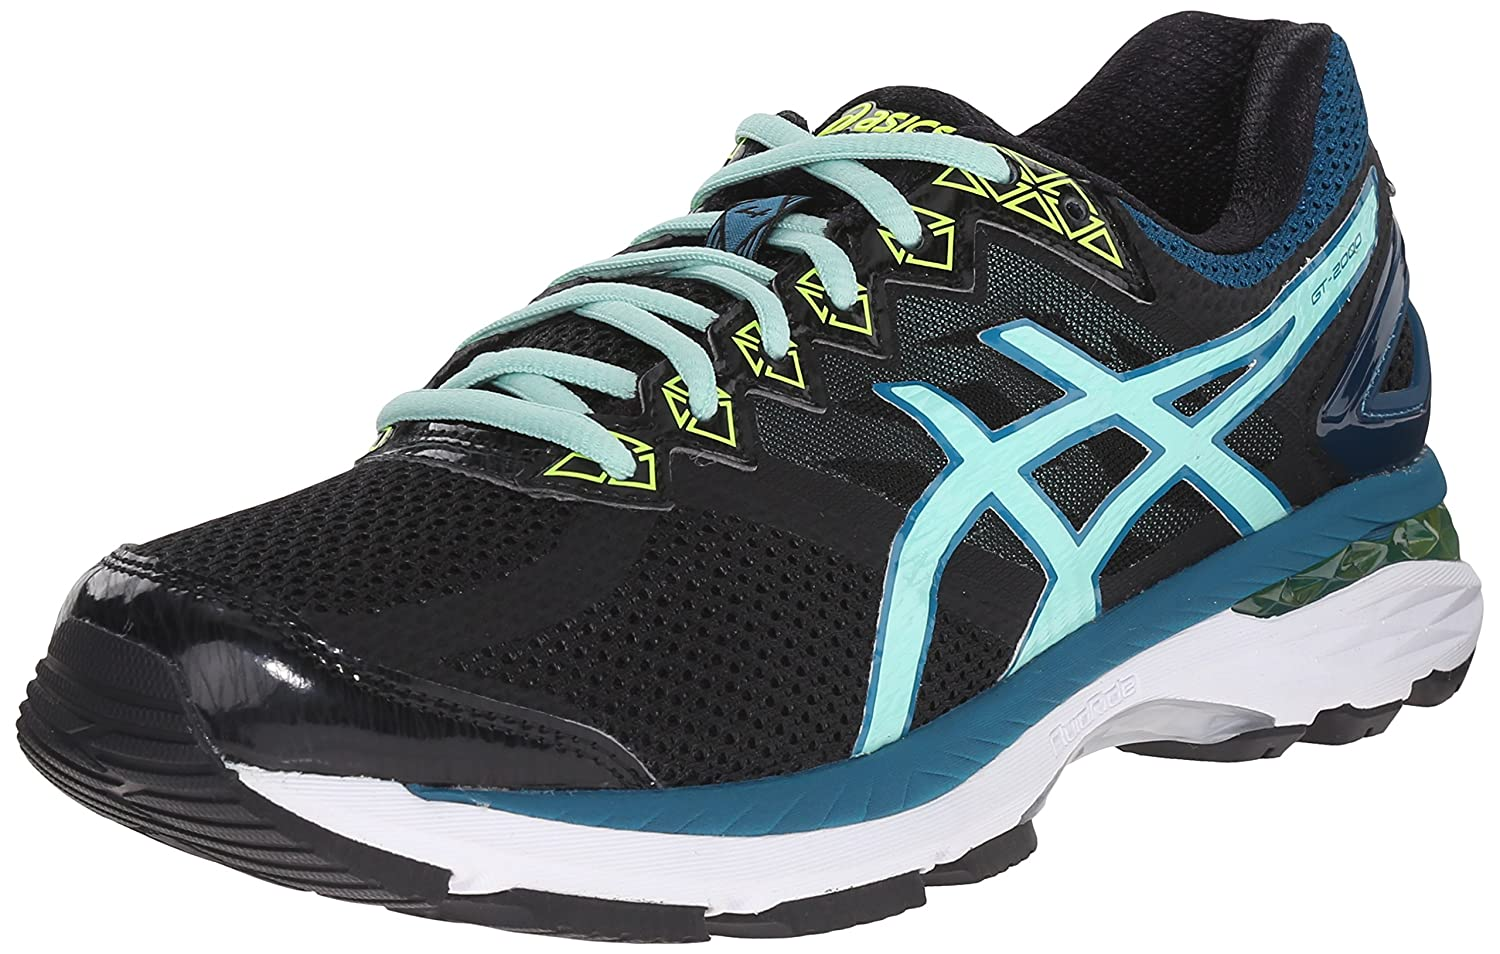 Black Pool bluee Flash Yellow ASICS Women's GT-2000 4 Running shoes